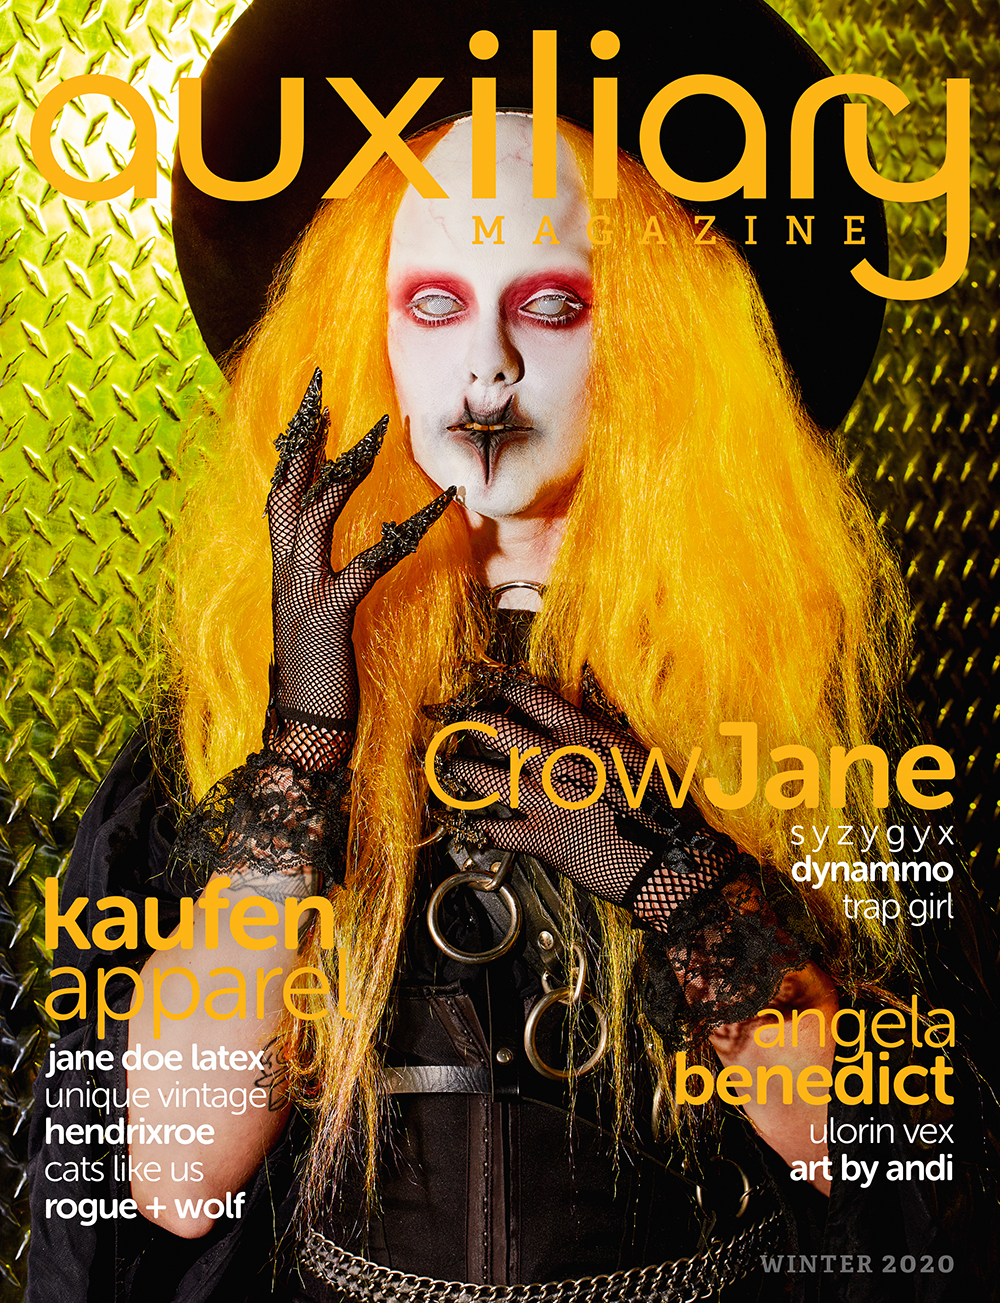 Auxiliary Magazine Winter 2020 Issue